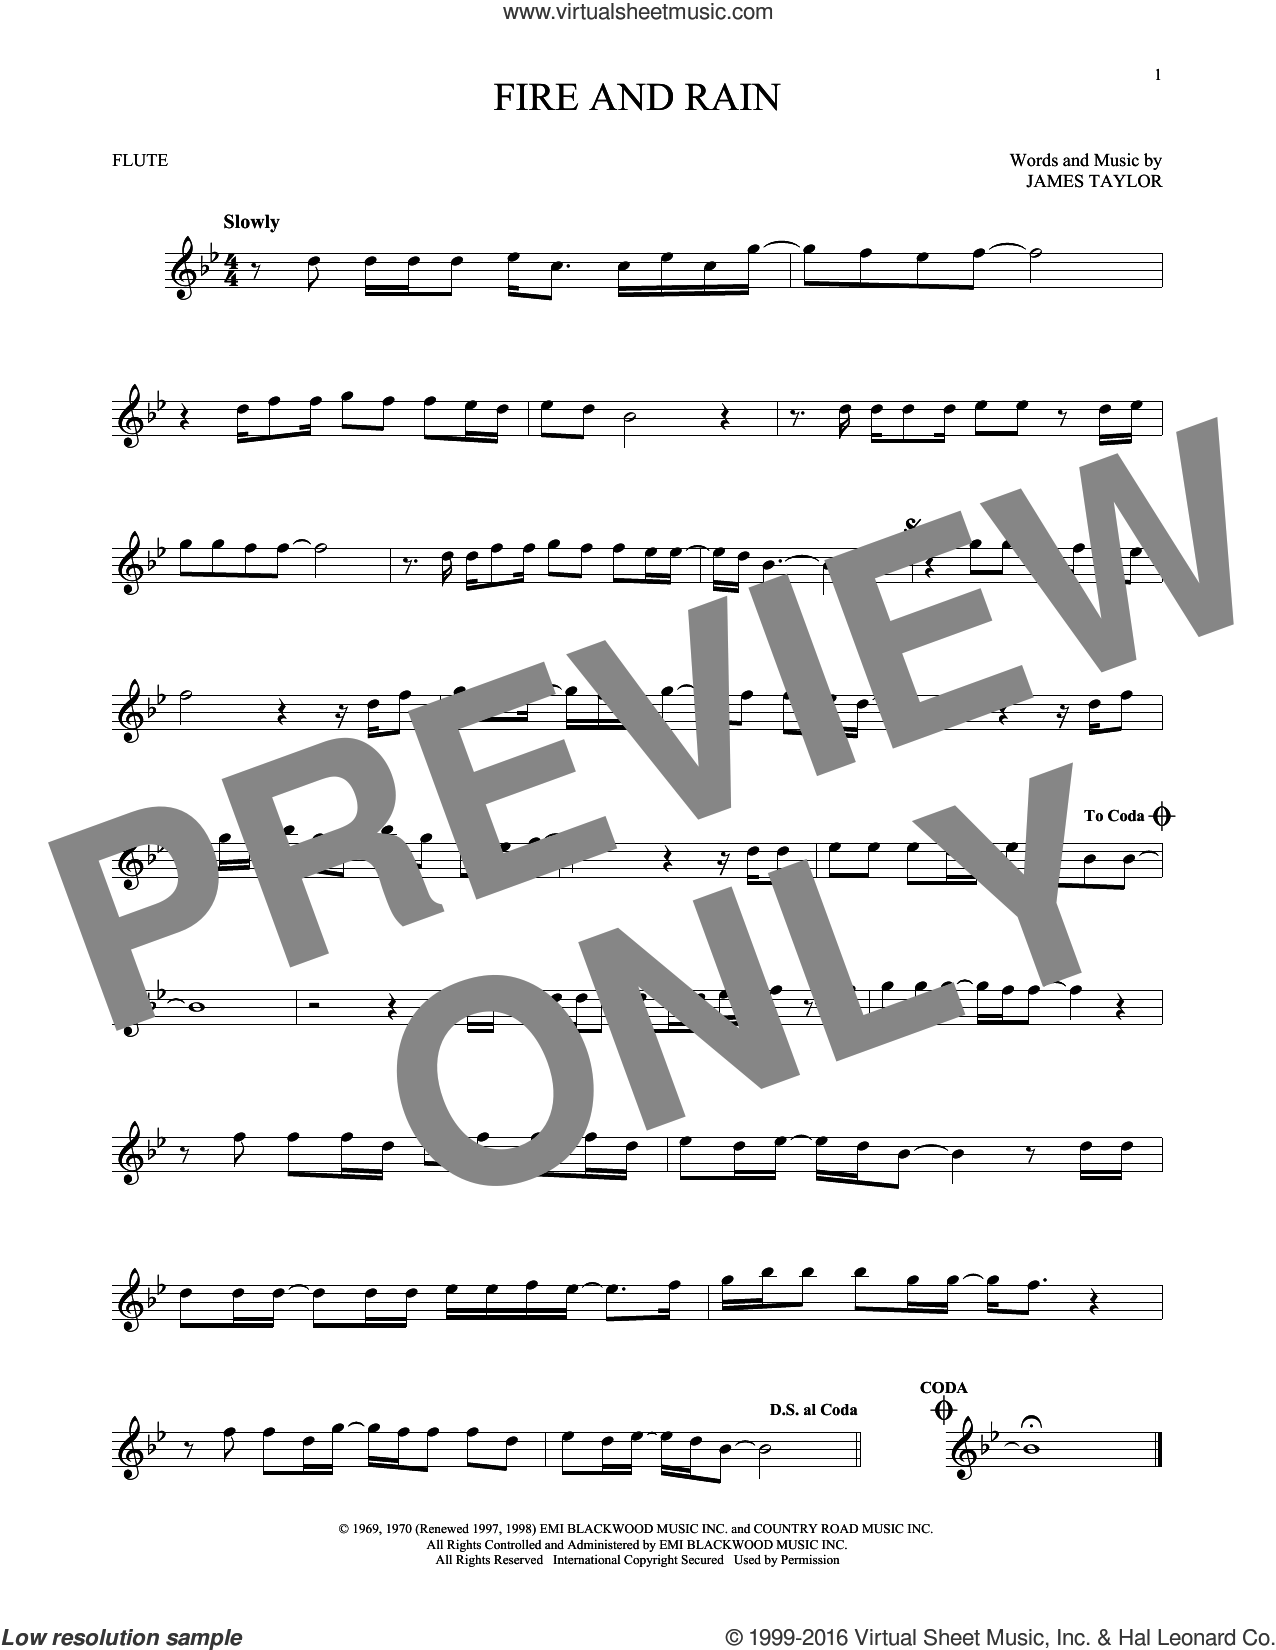 Fire And Rain sheet music for flute solo by James Taylor, intermediate skill level